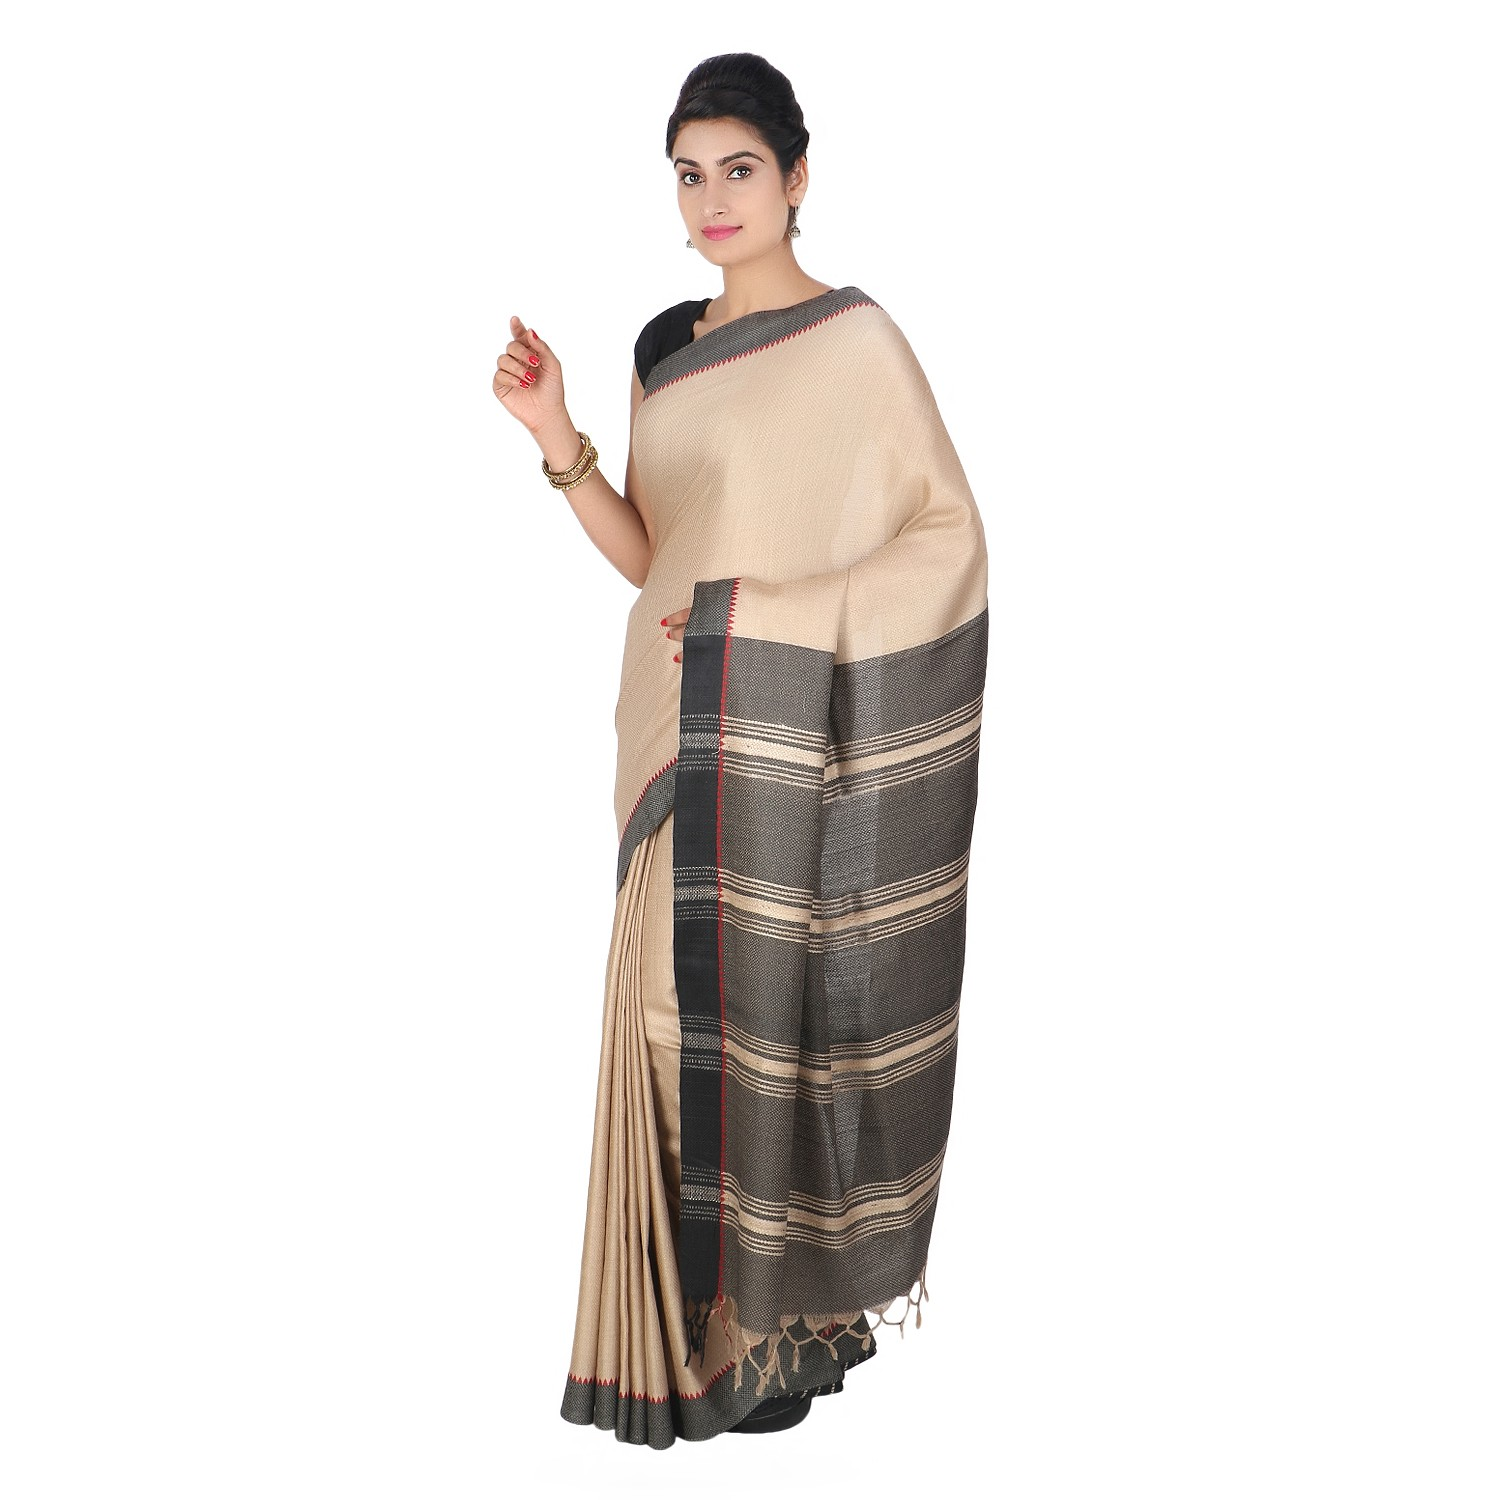 Handmade Cream Eri Tussar Silk Basket Weave Saree by Weavers of Bihar